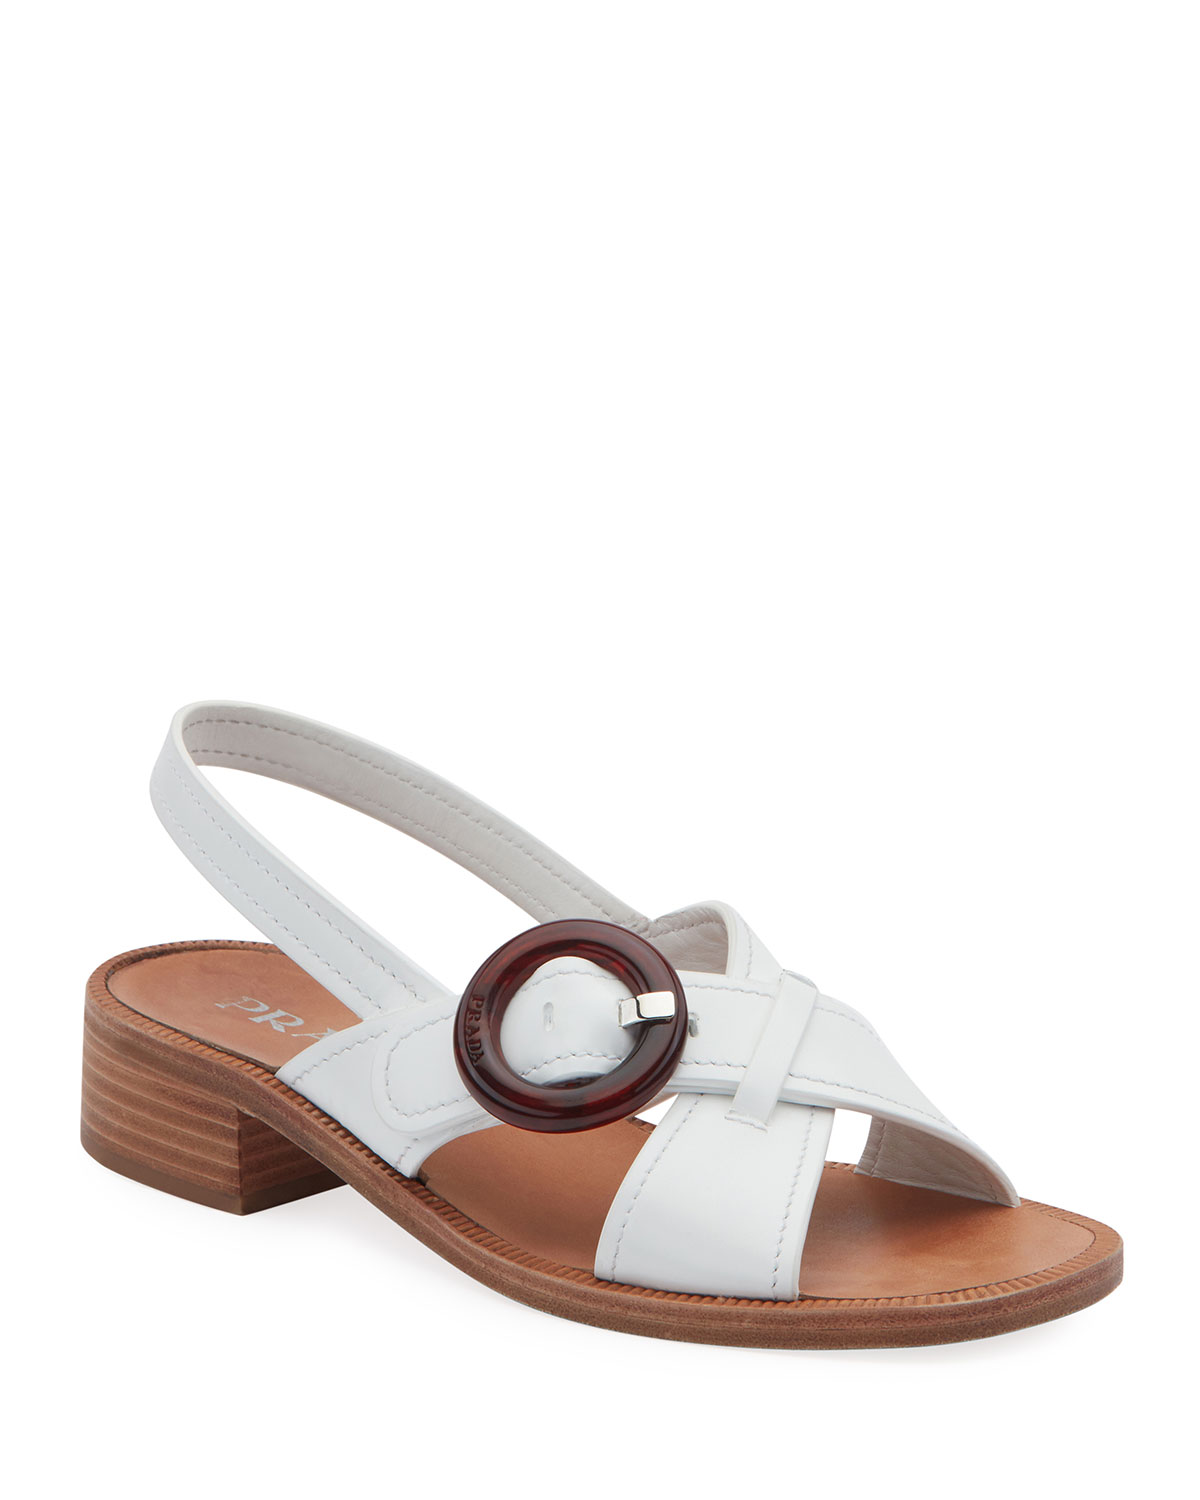 afbe3f7909c Prada Leather Buckle Flat Sandals